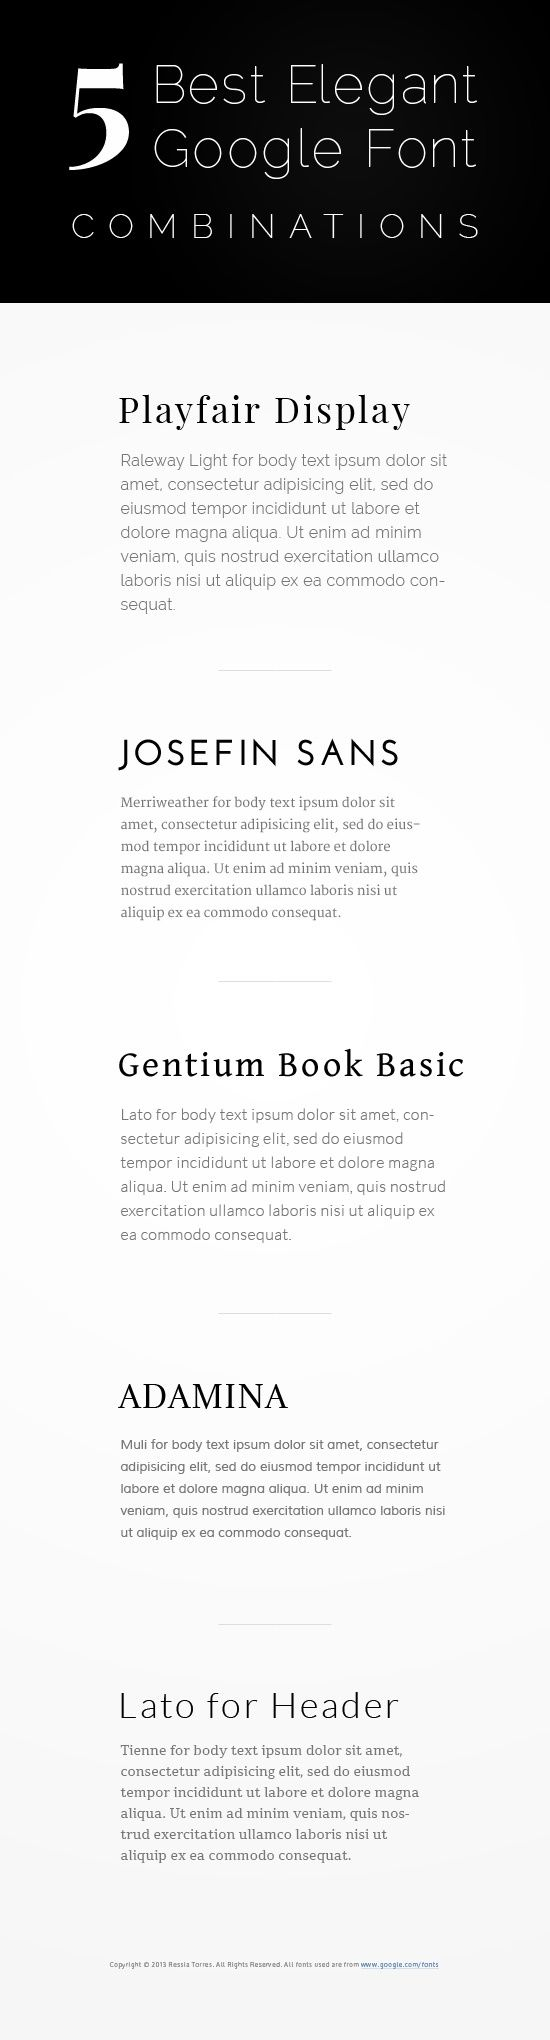 The five best elegant Google font combinations for your website or blog.